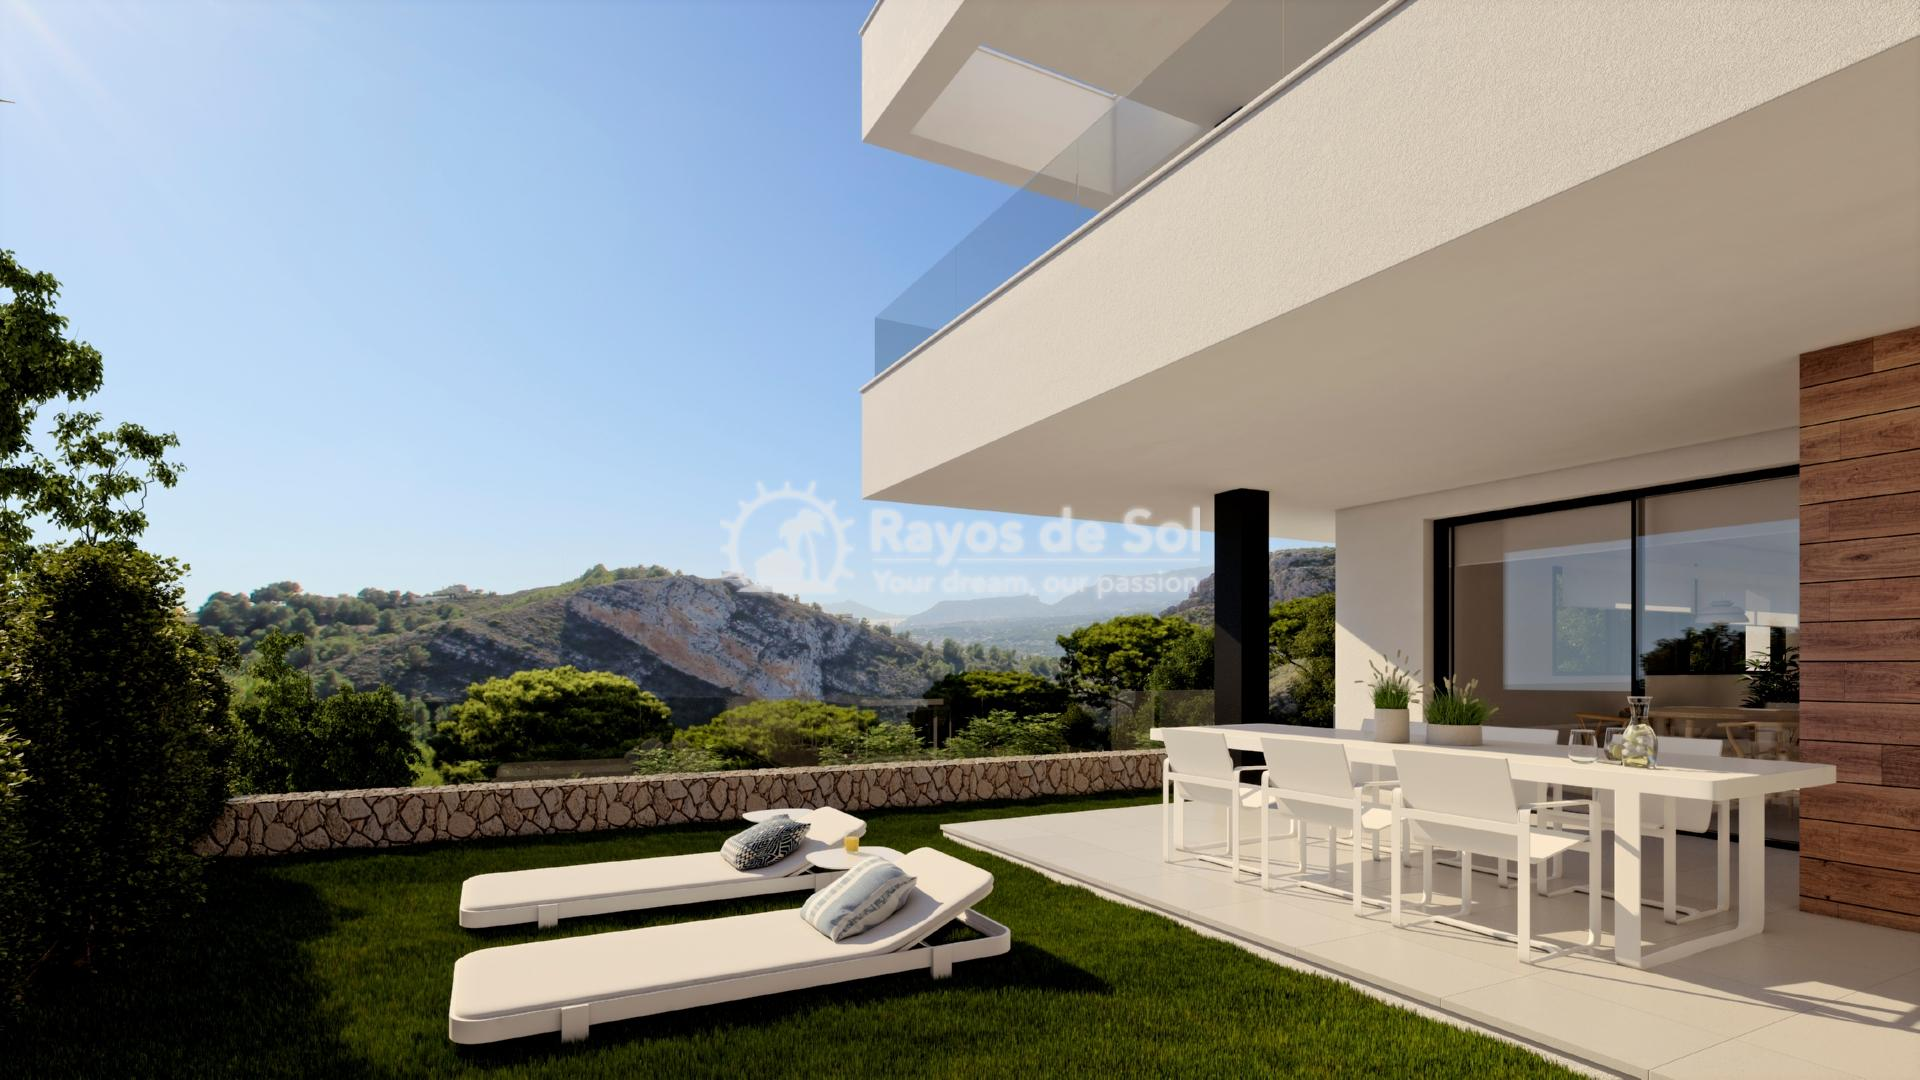 Apartment in Cumbre del Sol, Benitachell, Costa Blanca (ov-ph003) - 15